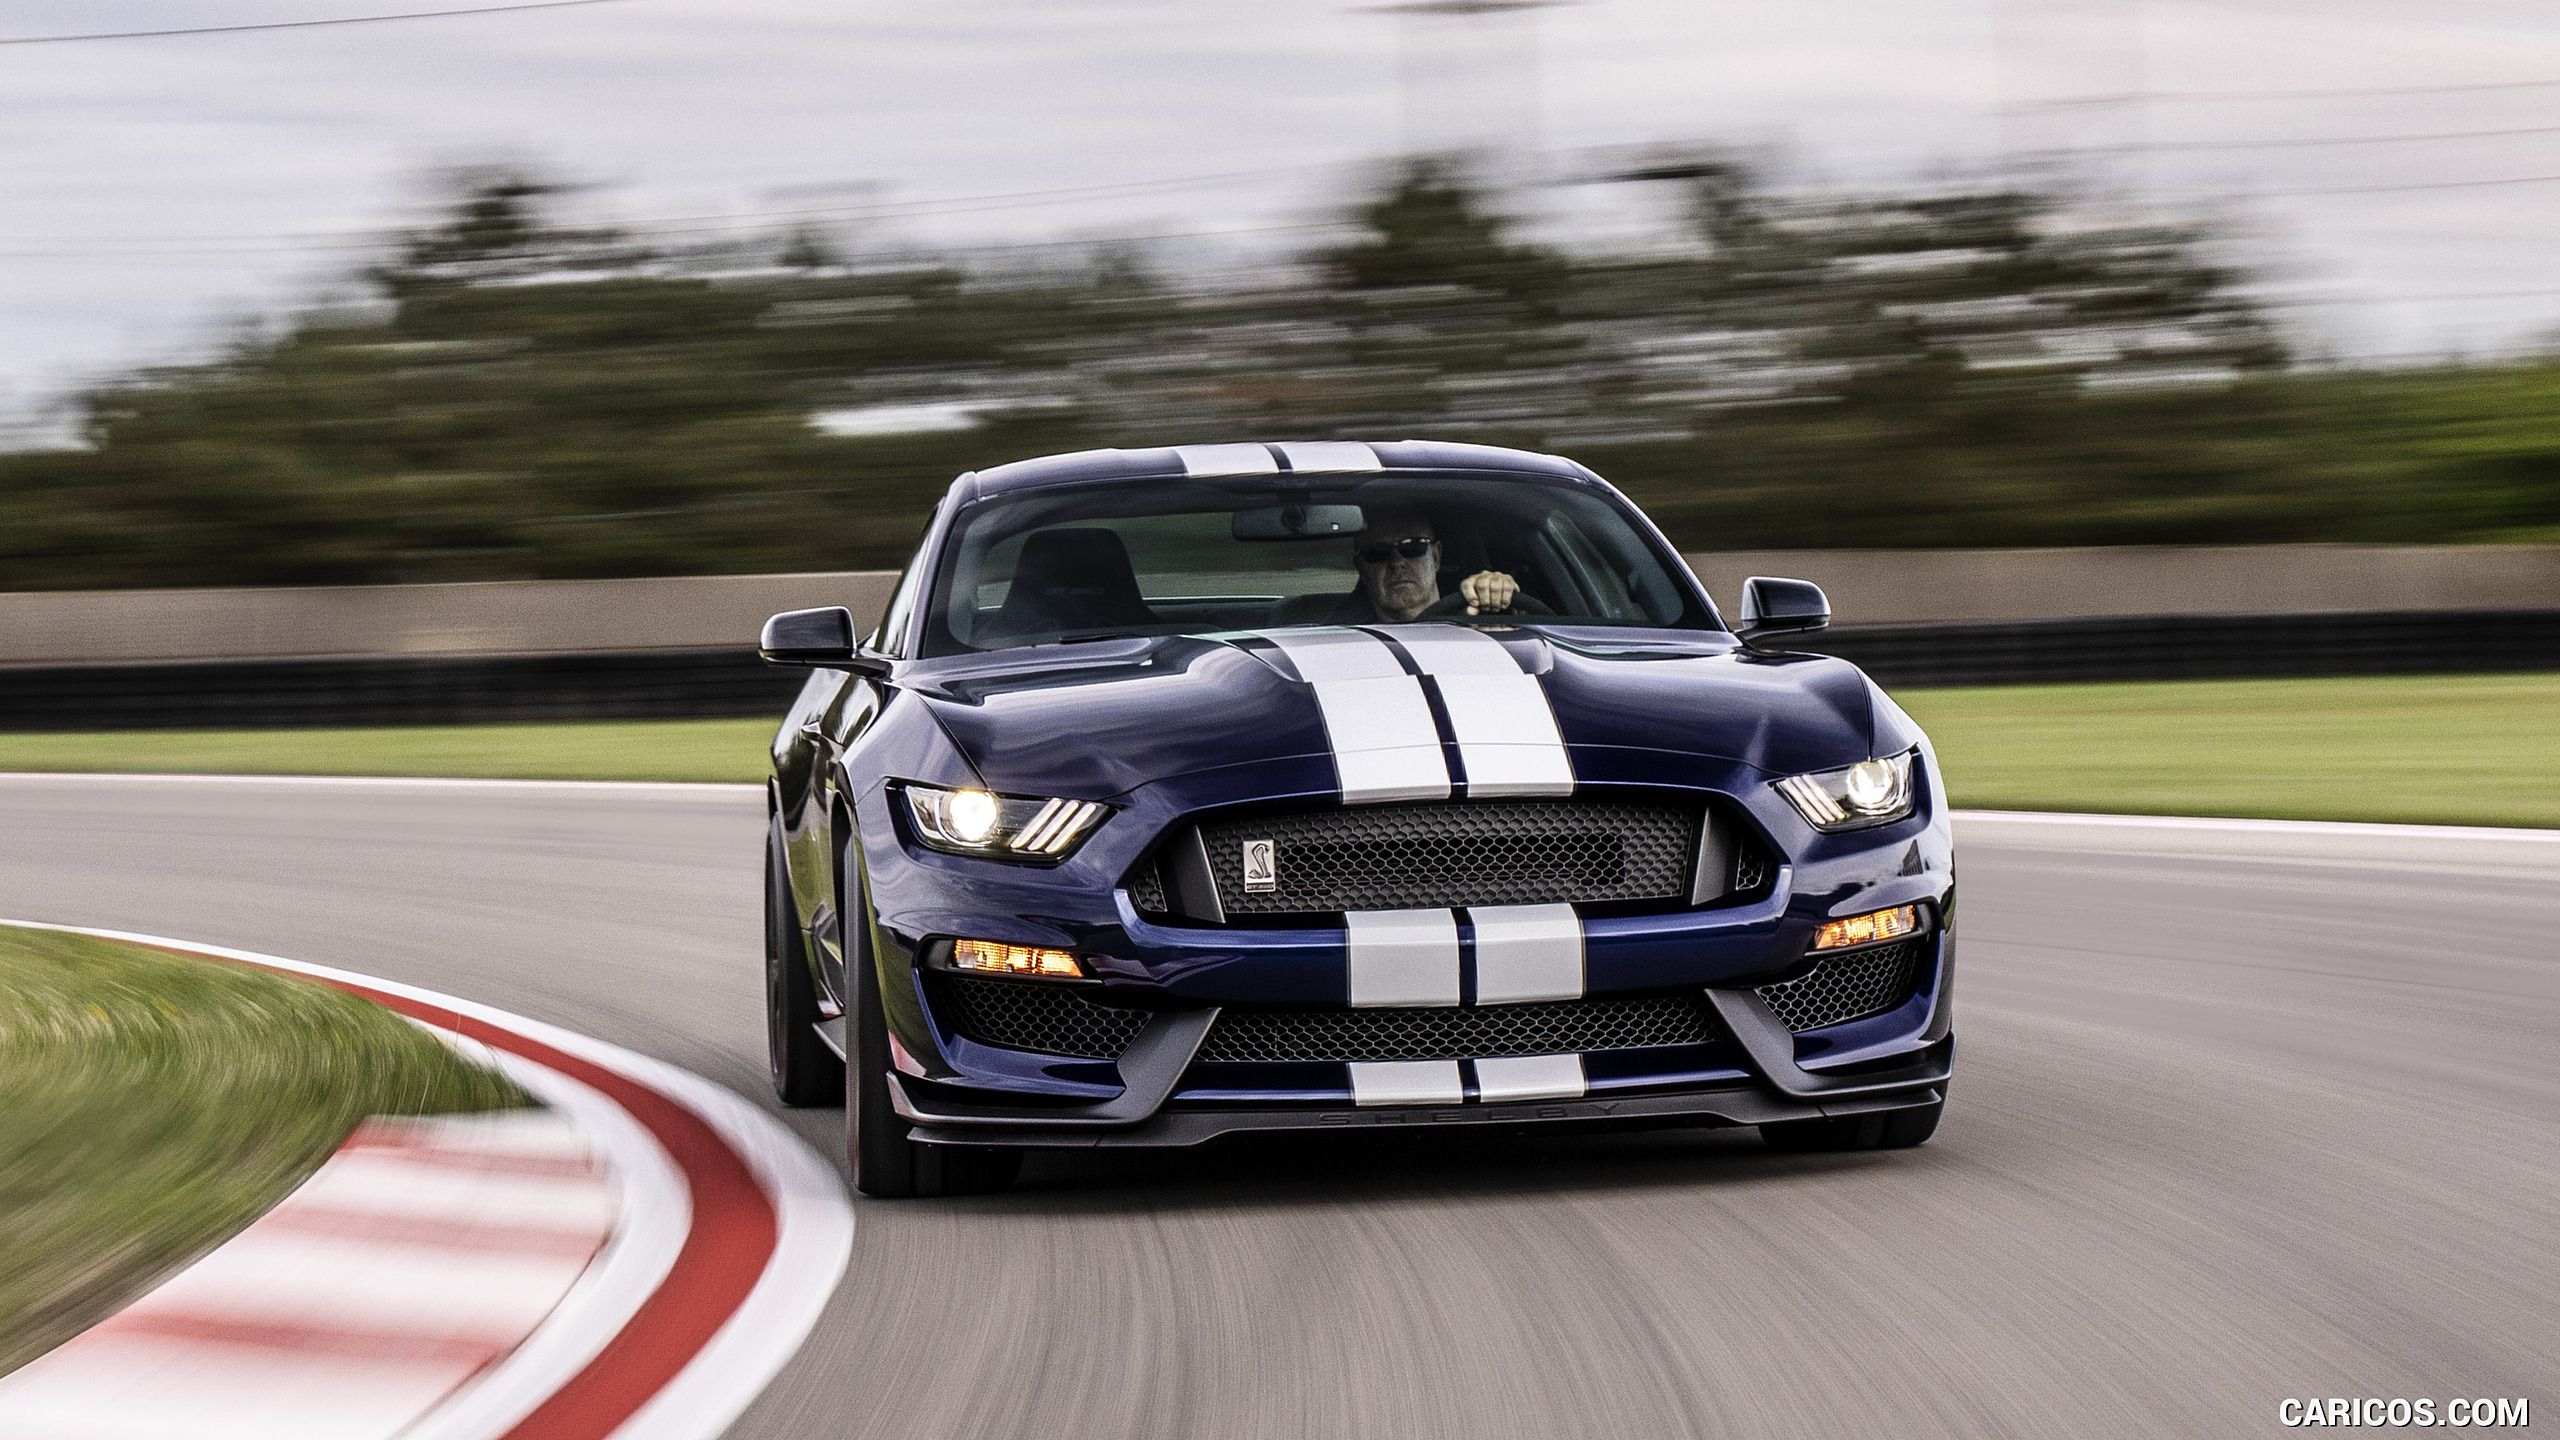 Ford Shelby Gt350 Wallpapers Top Free Ford Shelby Gt350 Backgrounds Wallpaperaccess